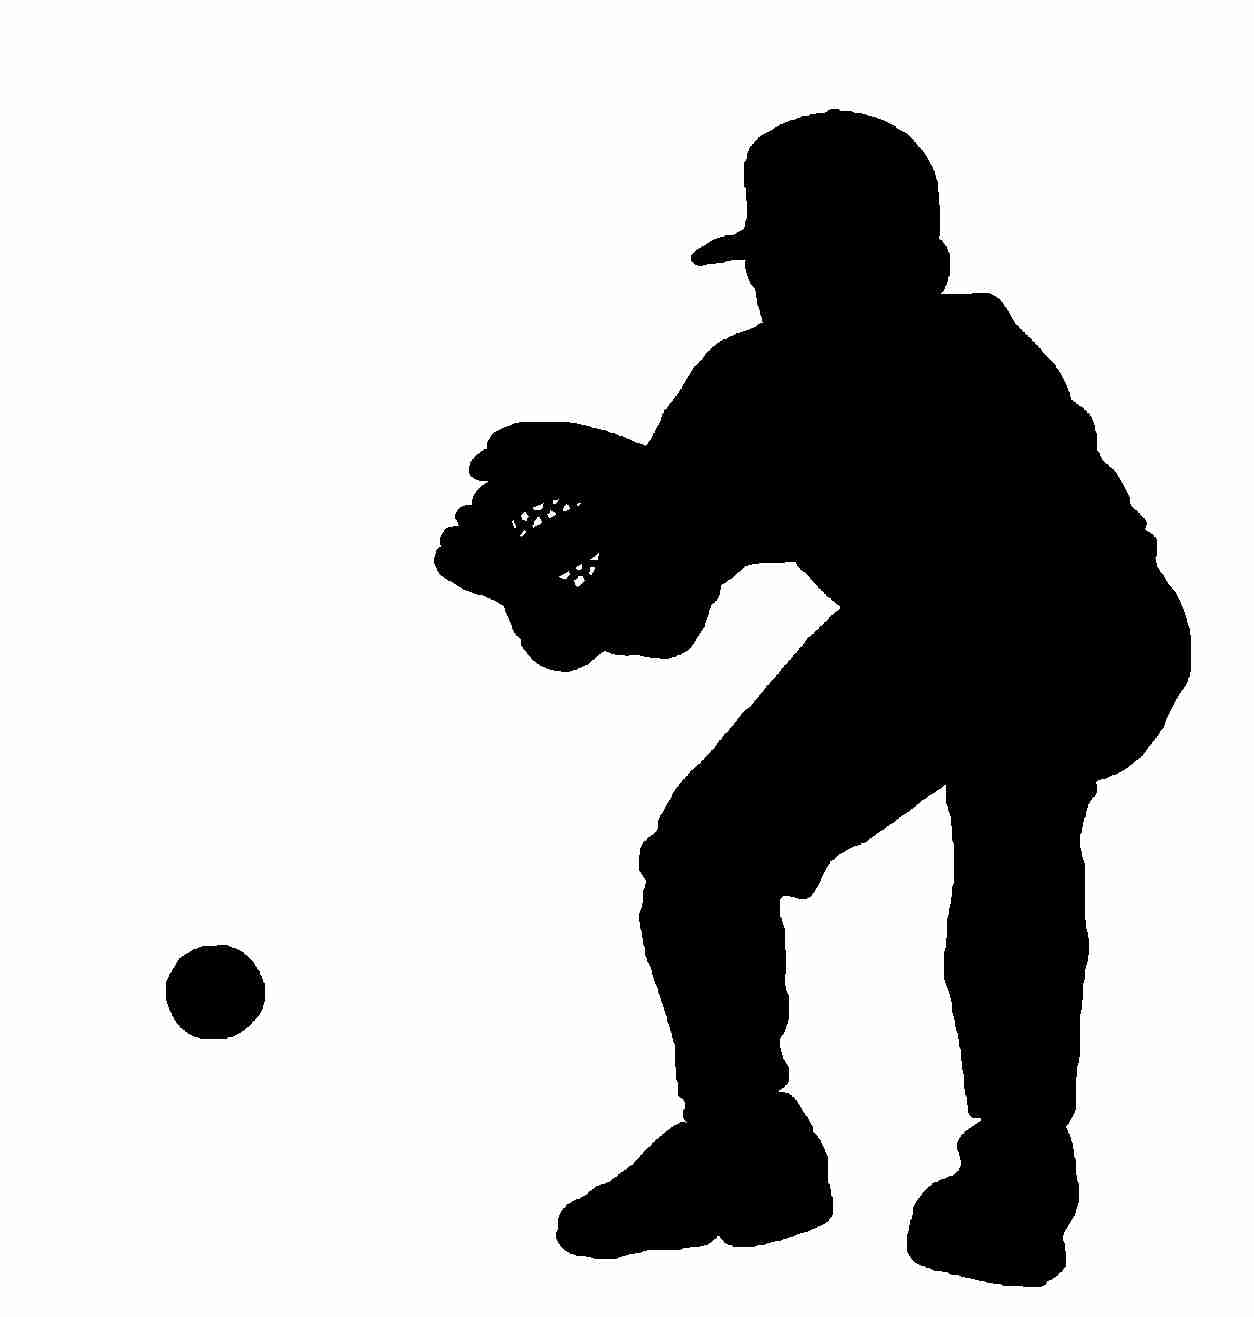 1254x1317 Baseball Player Silhouettes Royalty Free Vector Image Lively